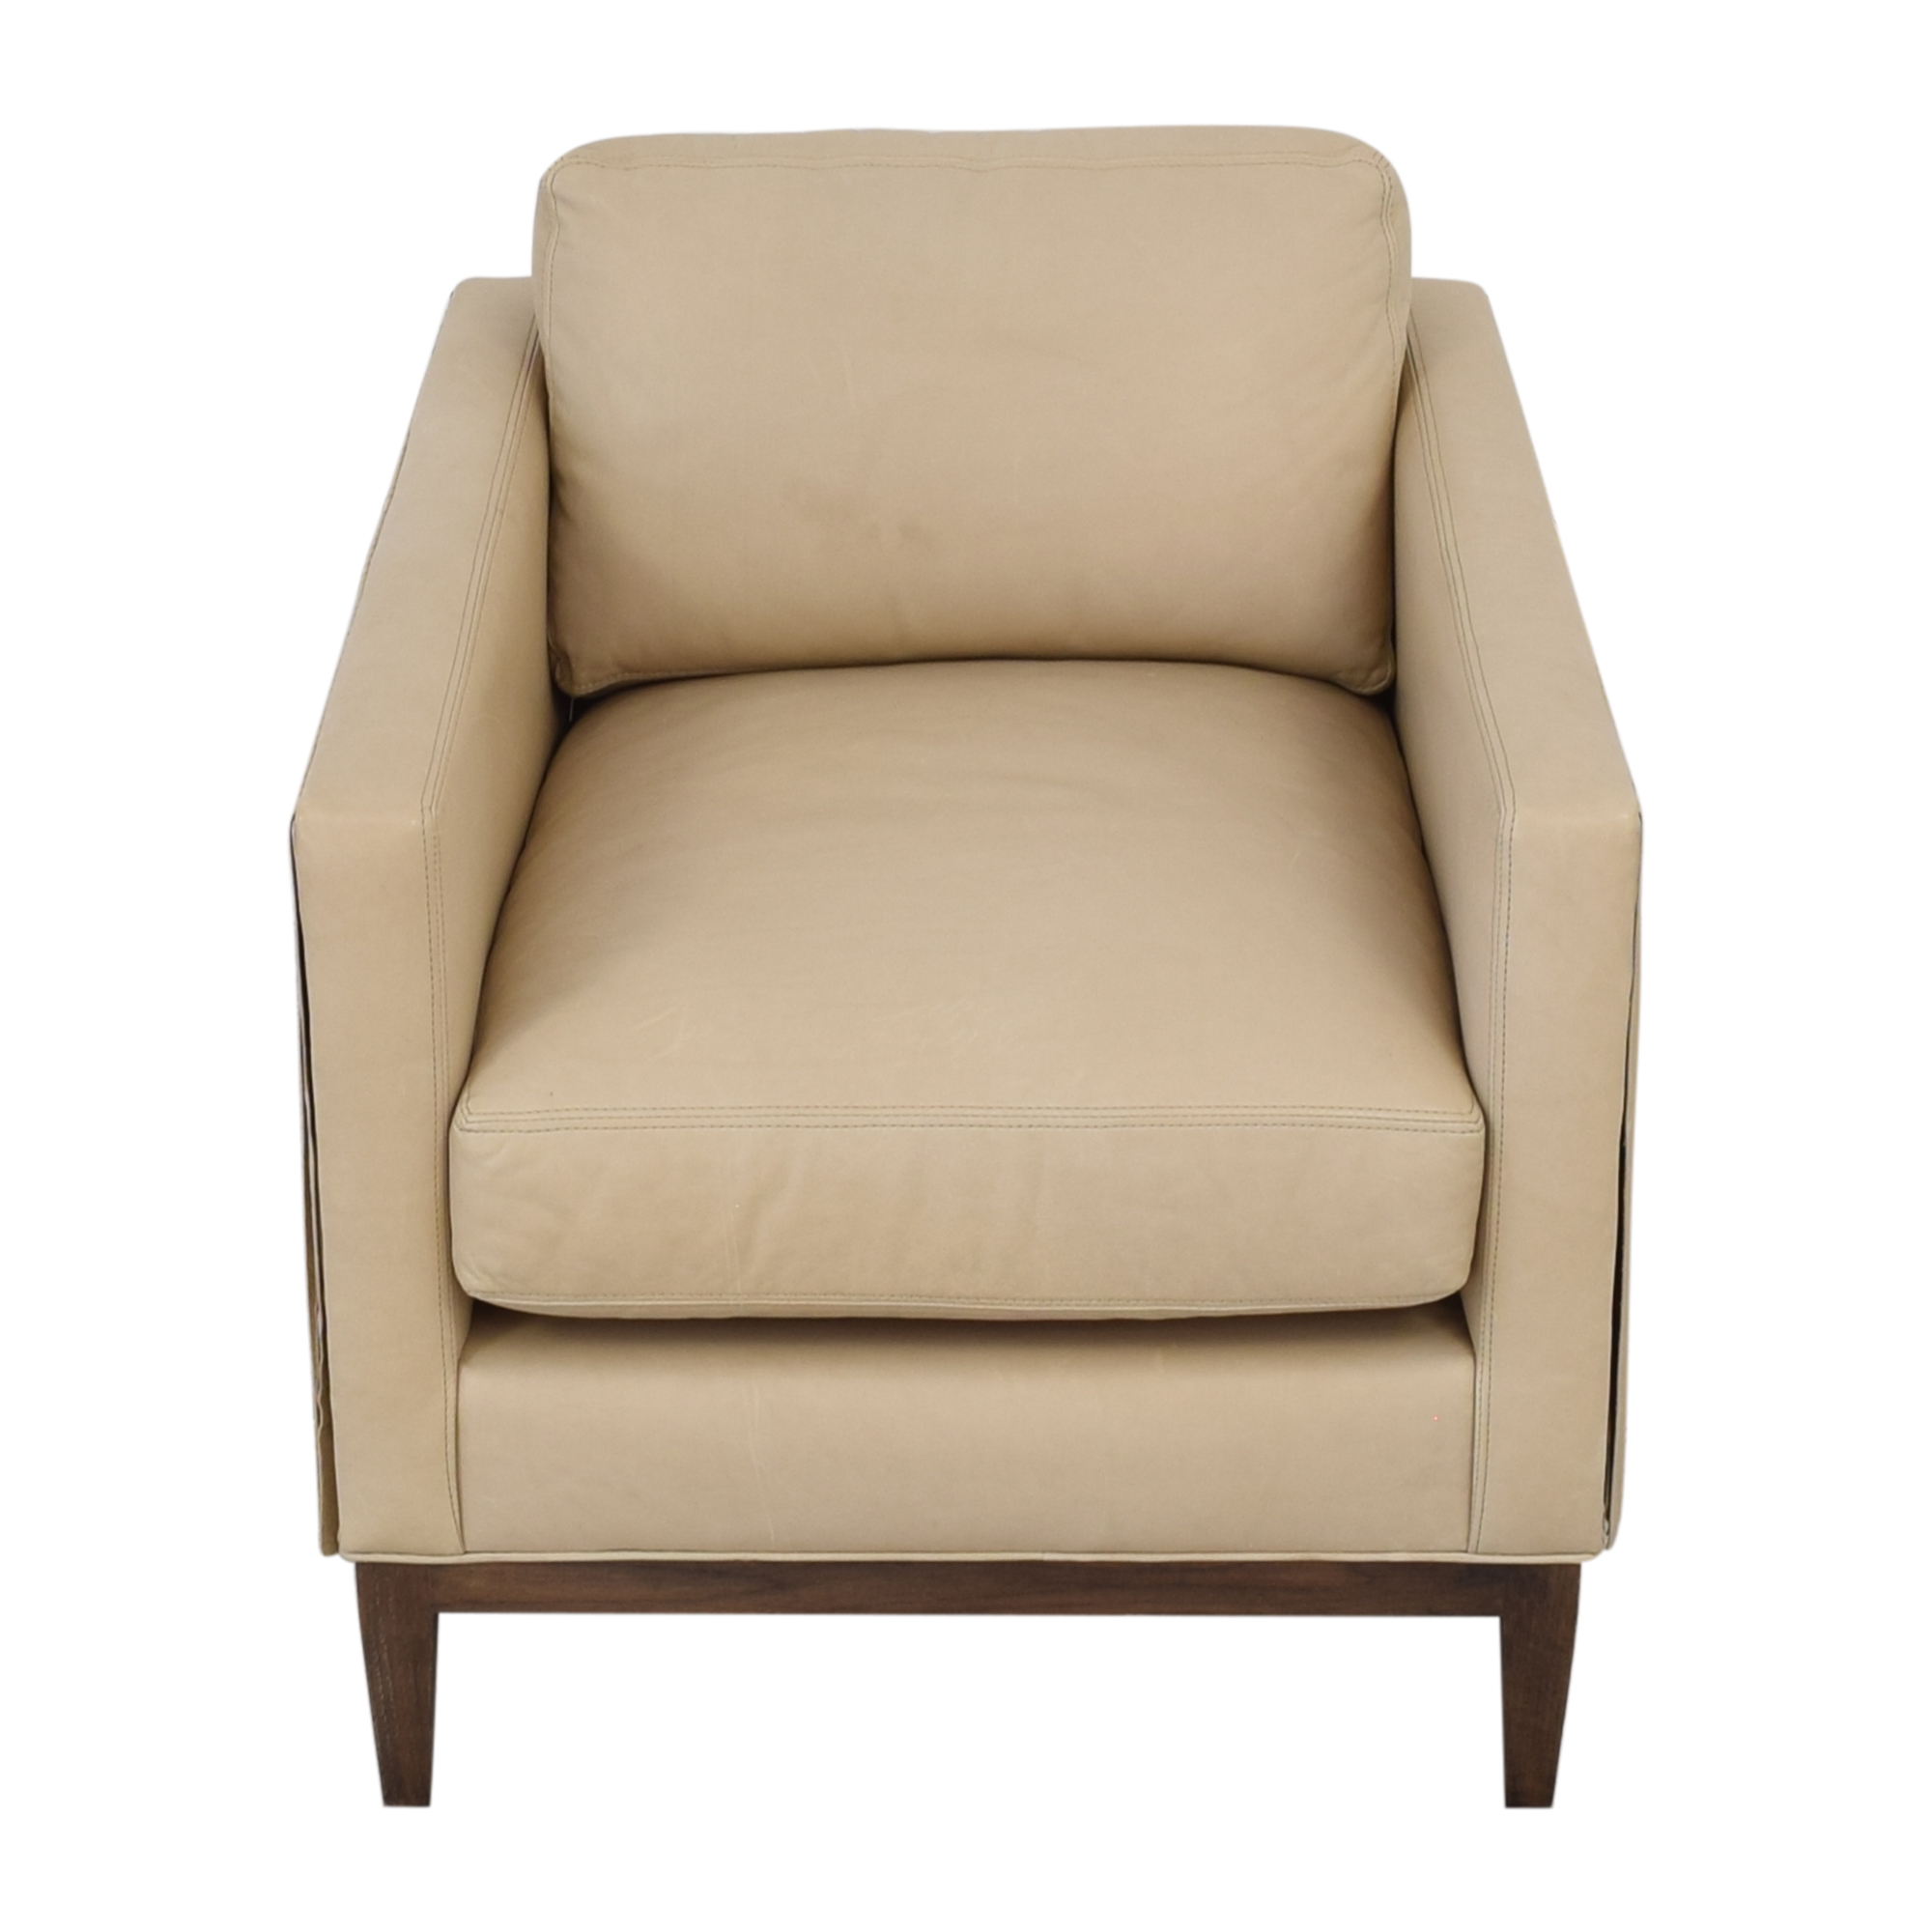 shop Lee Industries Leather Fringe Chair Lee Industries Accent Chairs